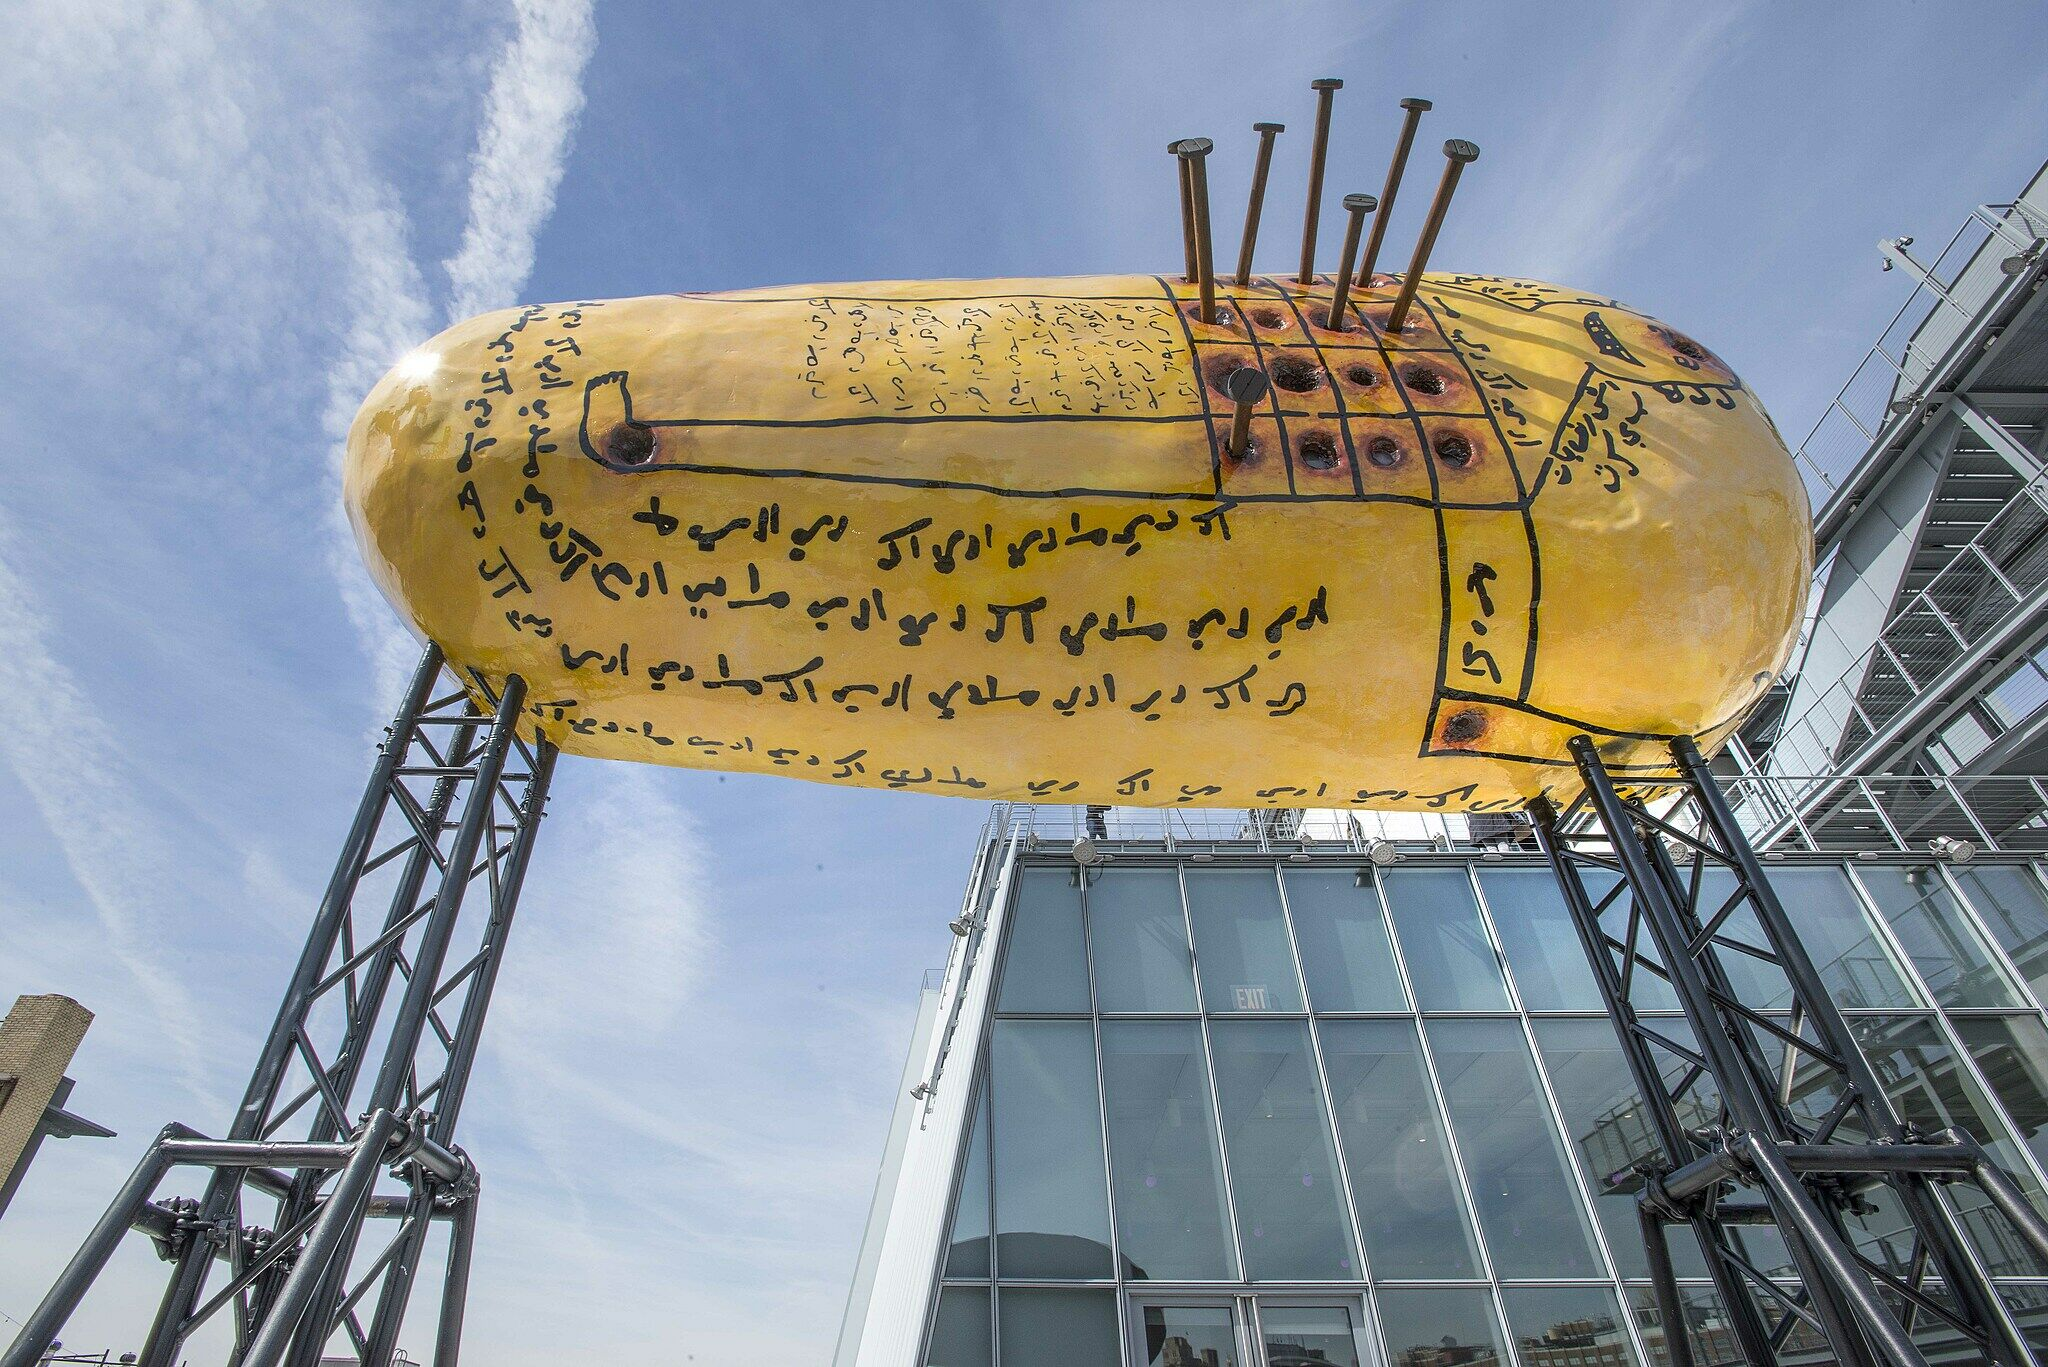 Large yellow gourd-shaped sculpture covered in black writing and nails